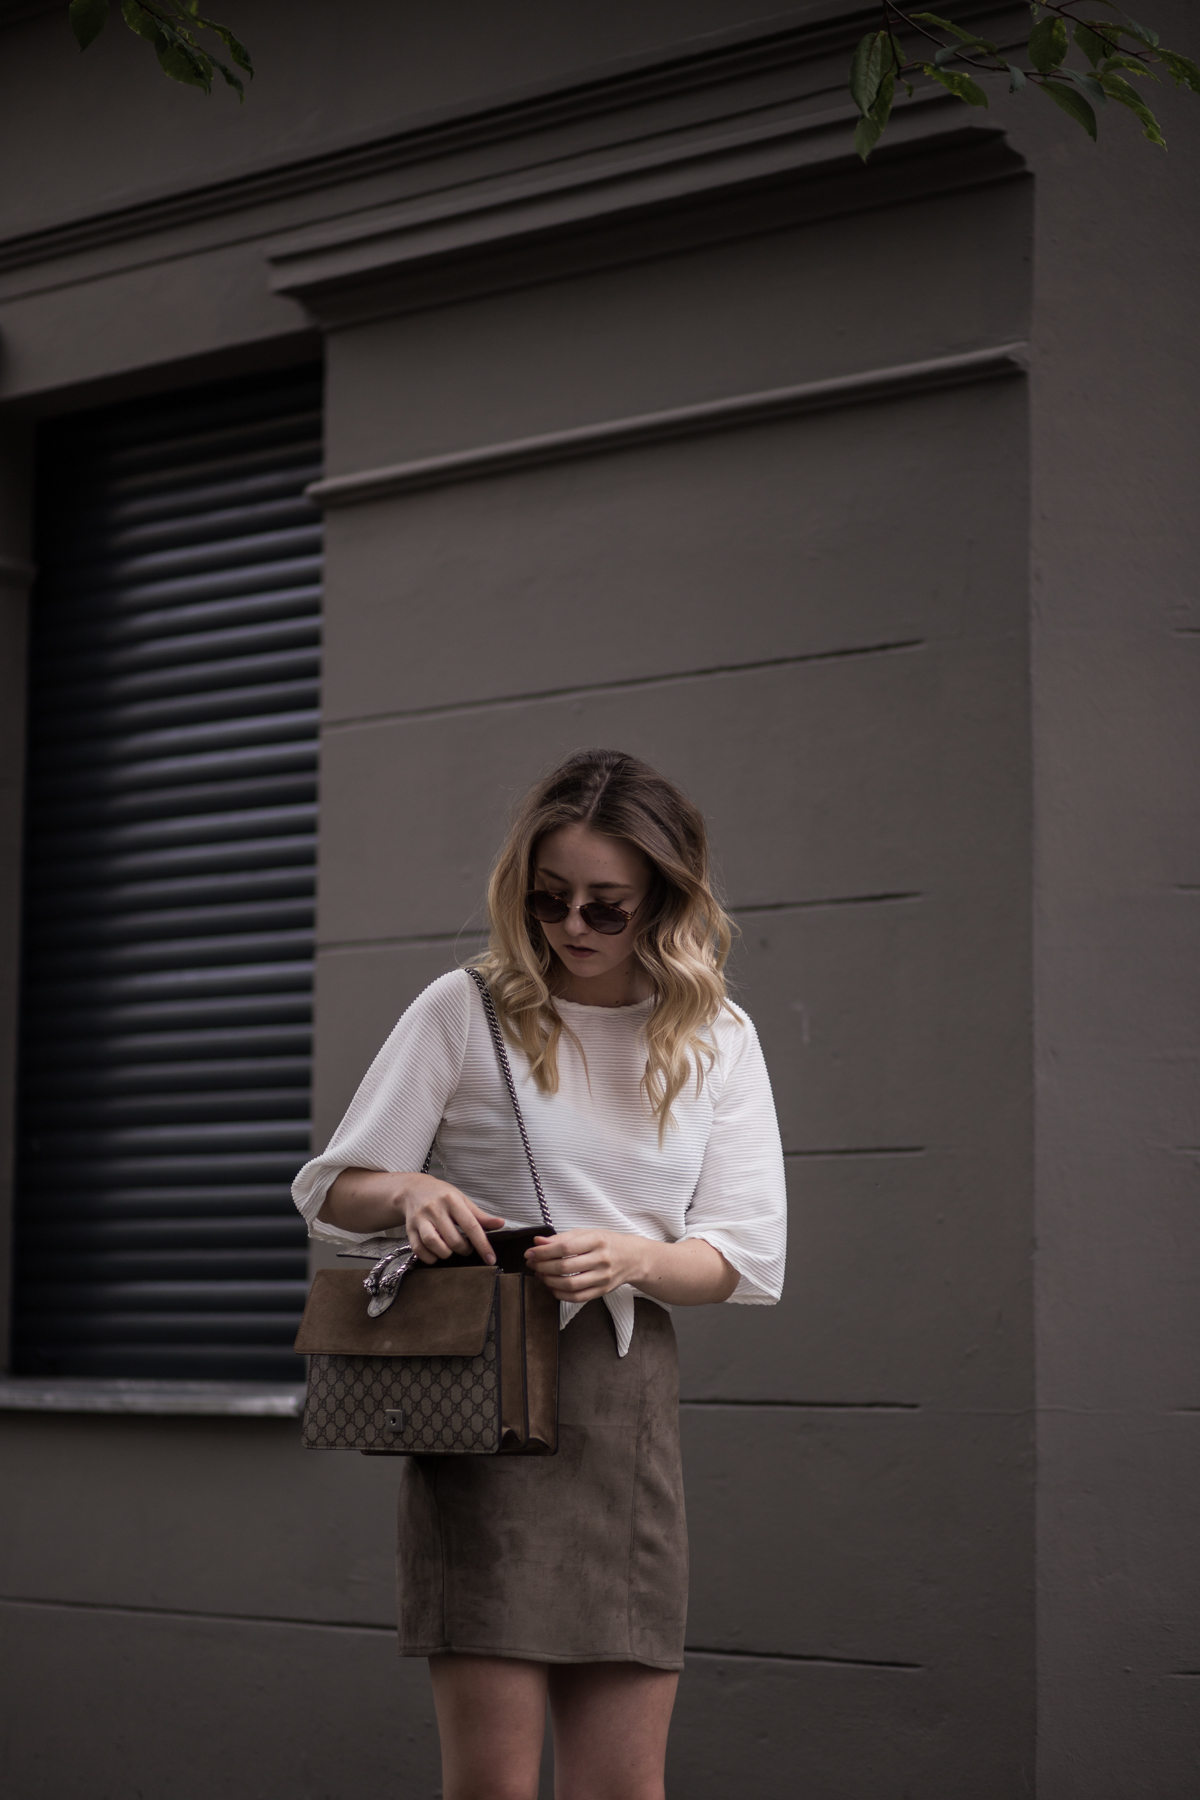 Fashion-Fashionblogger-Blogger-Berlin-Deutschland-Modeblog-Modeblogger-Fashion Week Berlin Streetstyle Gucci Dionysus Reserved Missguided Isabel Marant